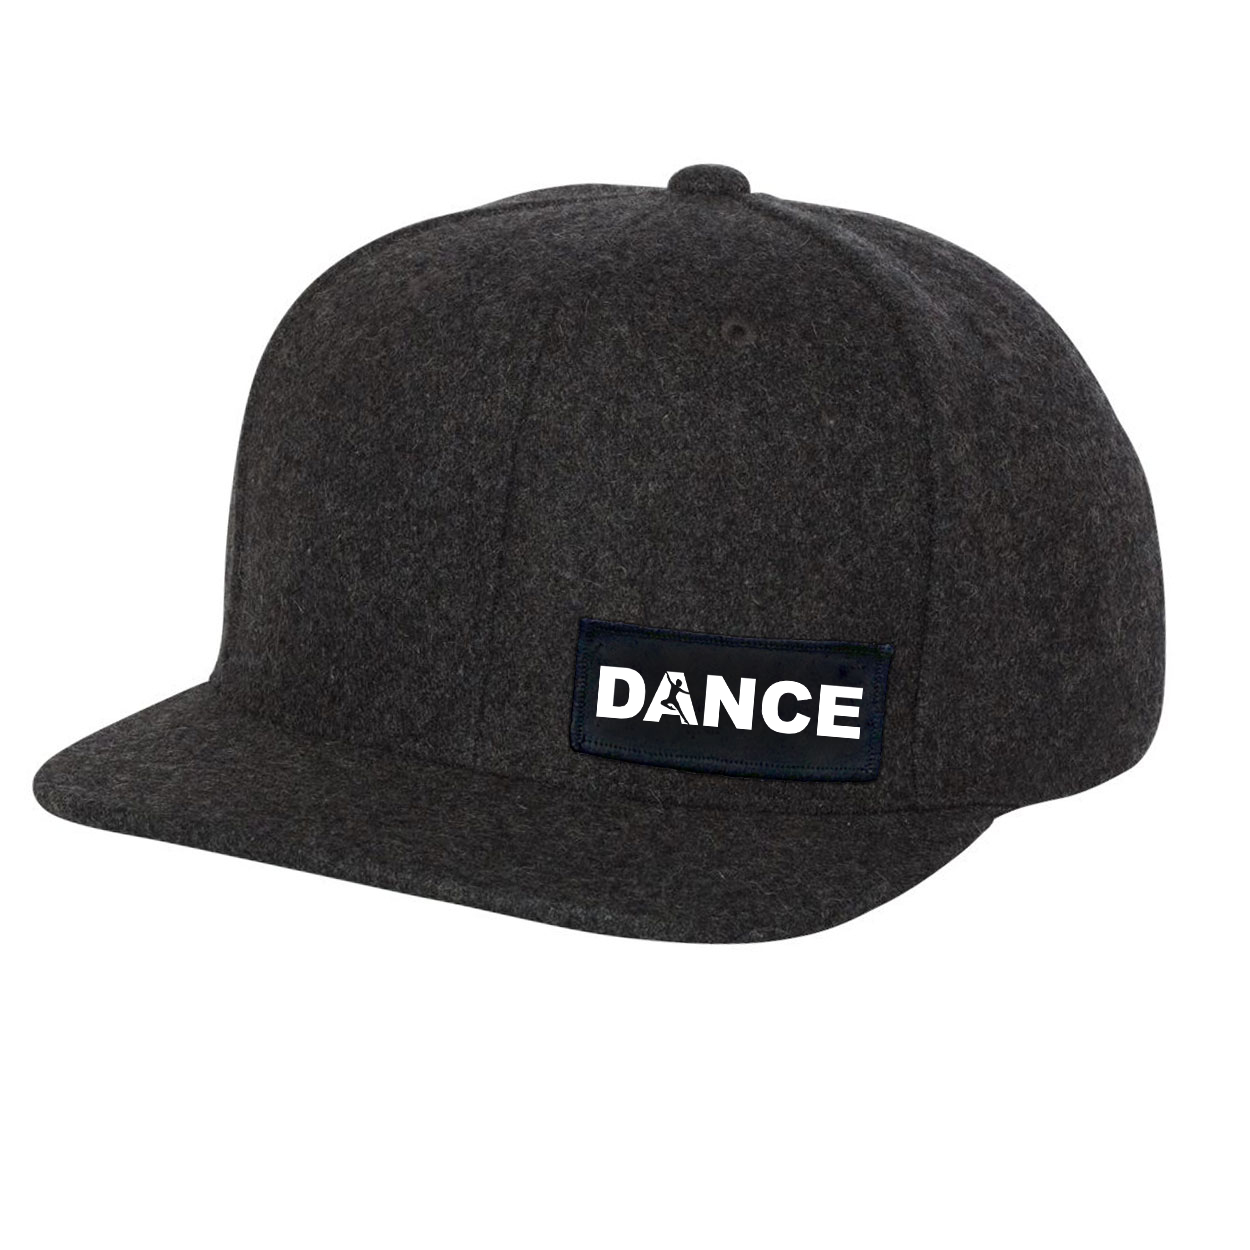 Dance Silhouette Logo Night Out Woven Patch Flat Brim Snapback Hat Dark Heather Gray Wool (White Logo)